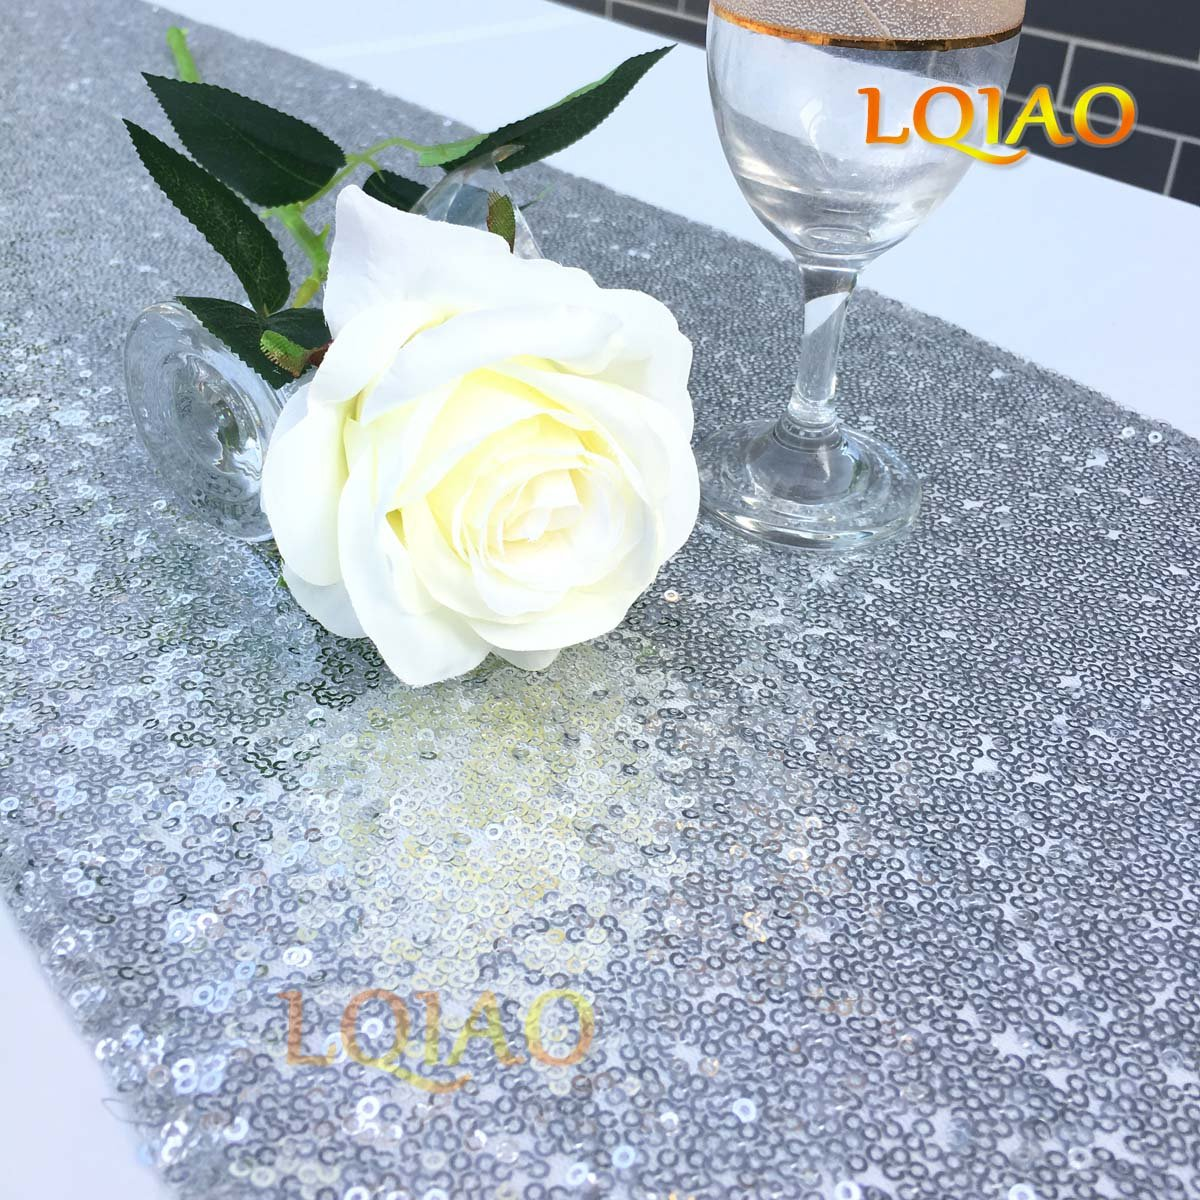 LQIAO Luxury Table Runner 12x108in, Silver Sequin Table Runner Wedding Decoration Sparkly Bling Table Runners, Glitz Sequin Table Runner for Christmas Wedding&Events by Linen Clubs, Pack of 20 PCS by LQIAO